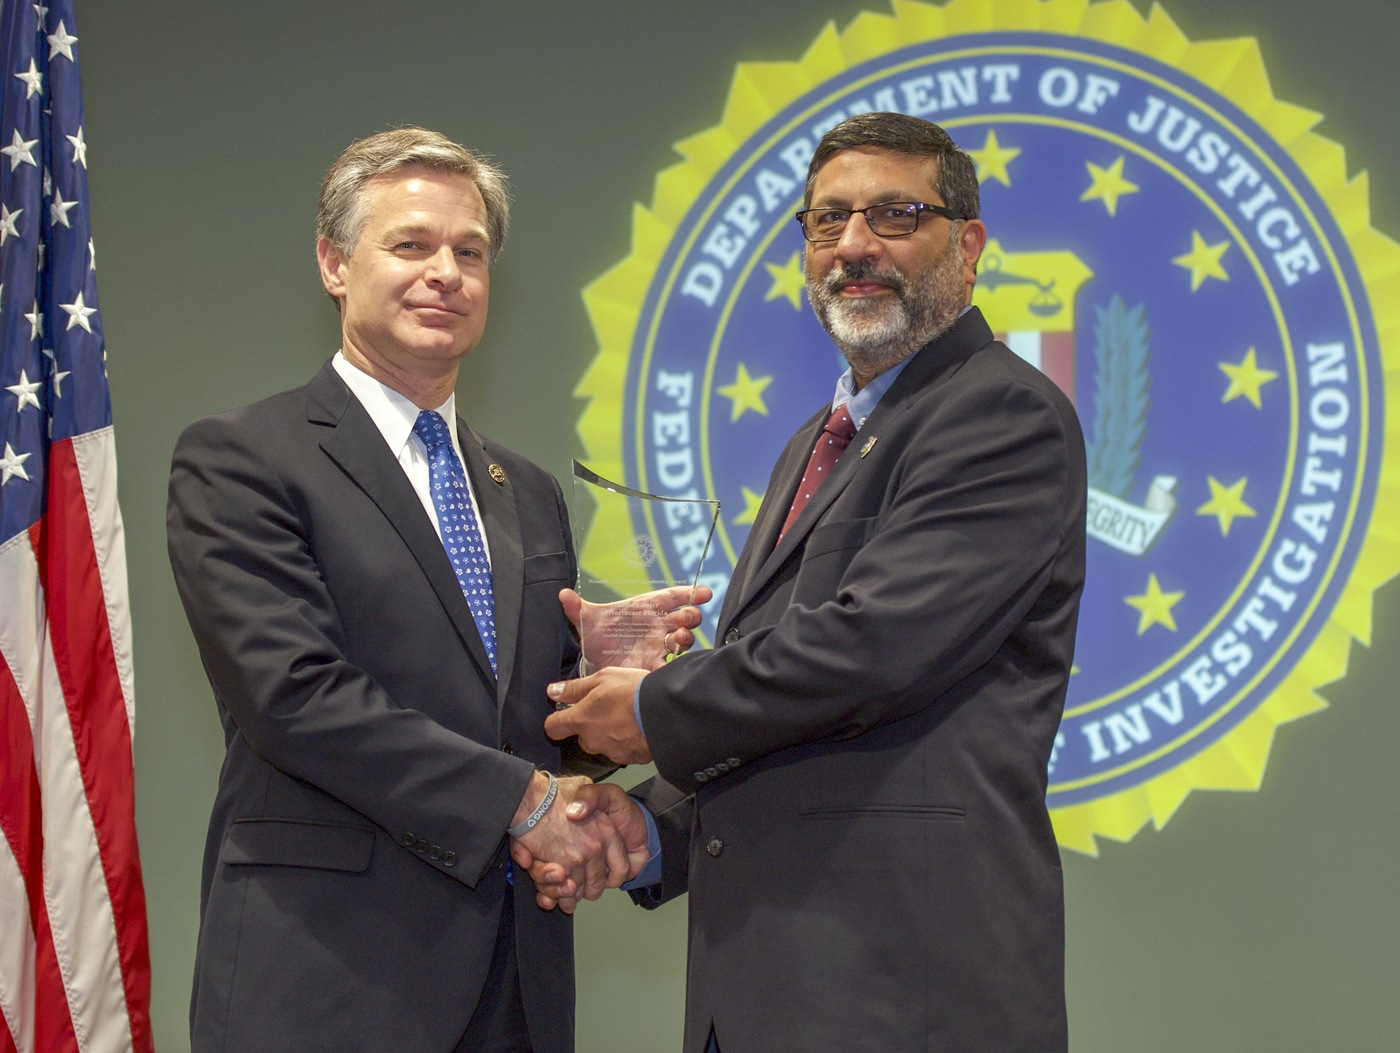 FBI Director Christopher Wray presents Jacksonville Division recipient the Islamic Center of Northeast Florida (represented by Shauib Karim) with the Director's Community Leadership Award (DCLA) at a ceremony at FBI Headquarters on May 3, 2019.